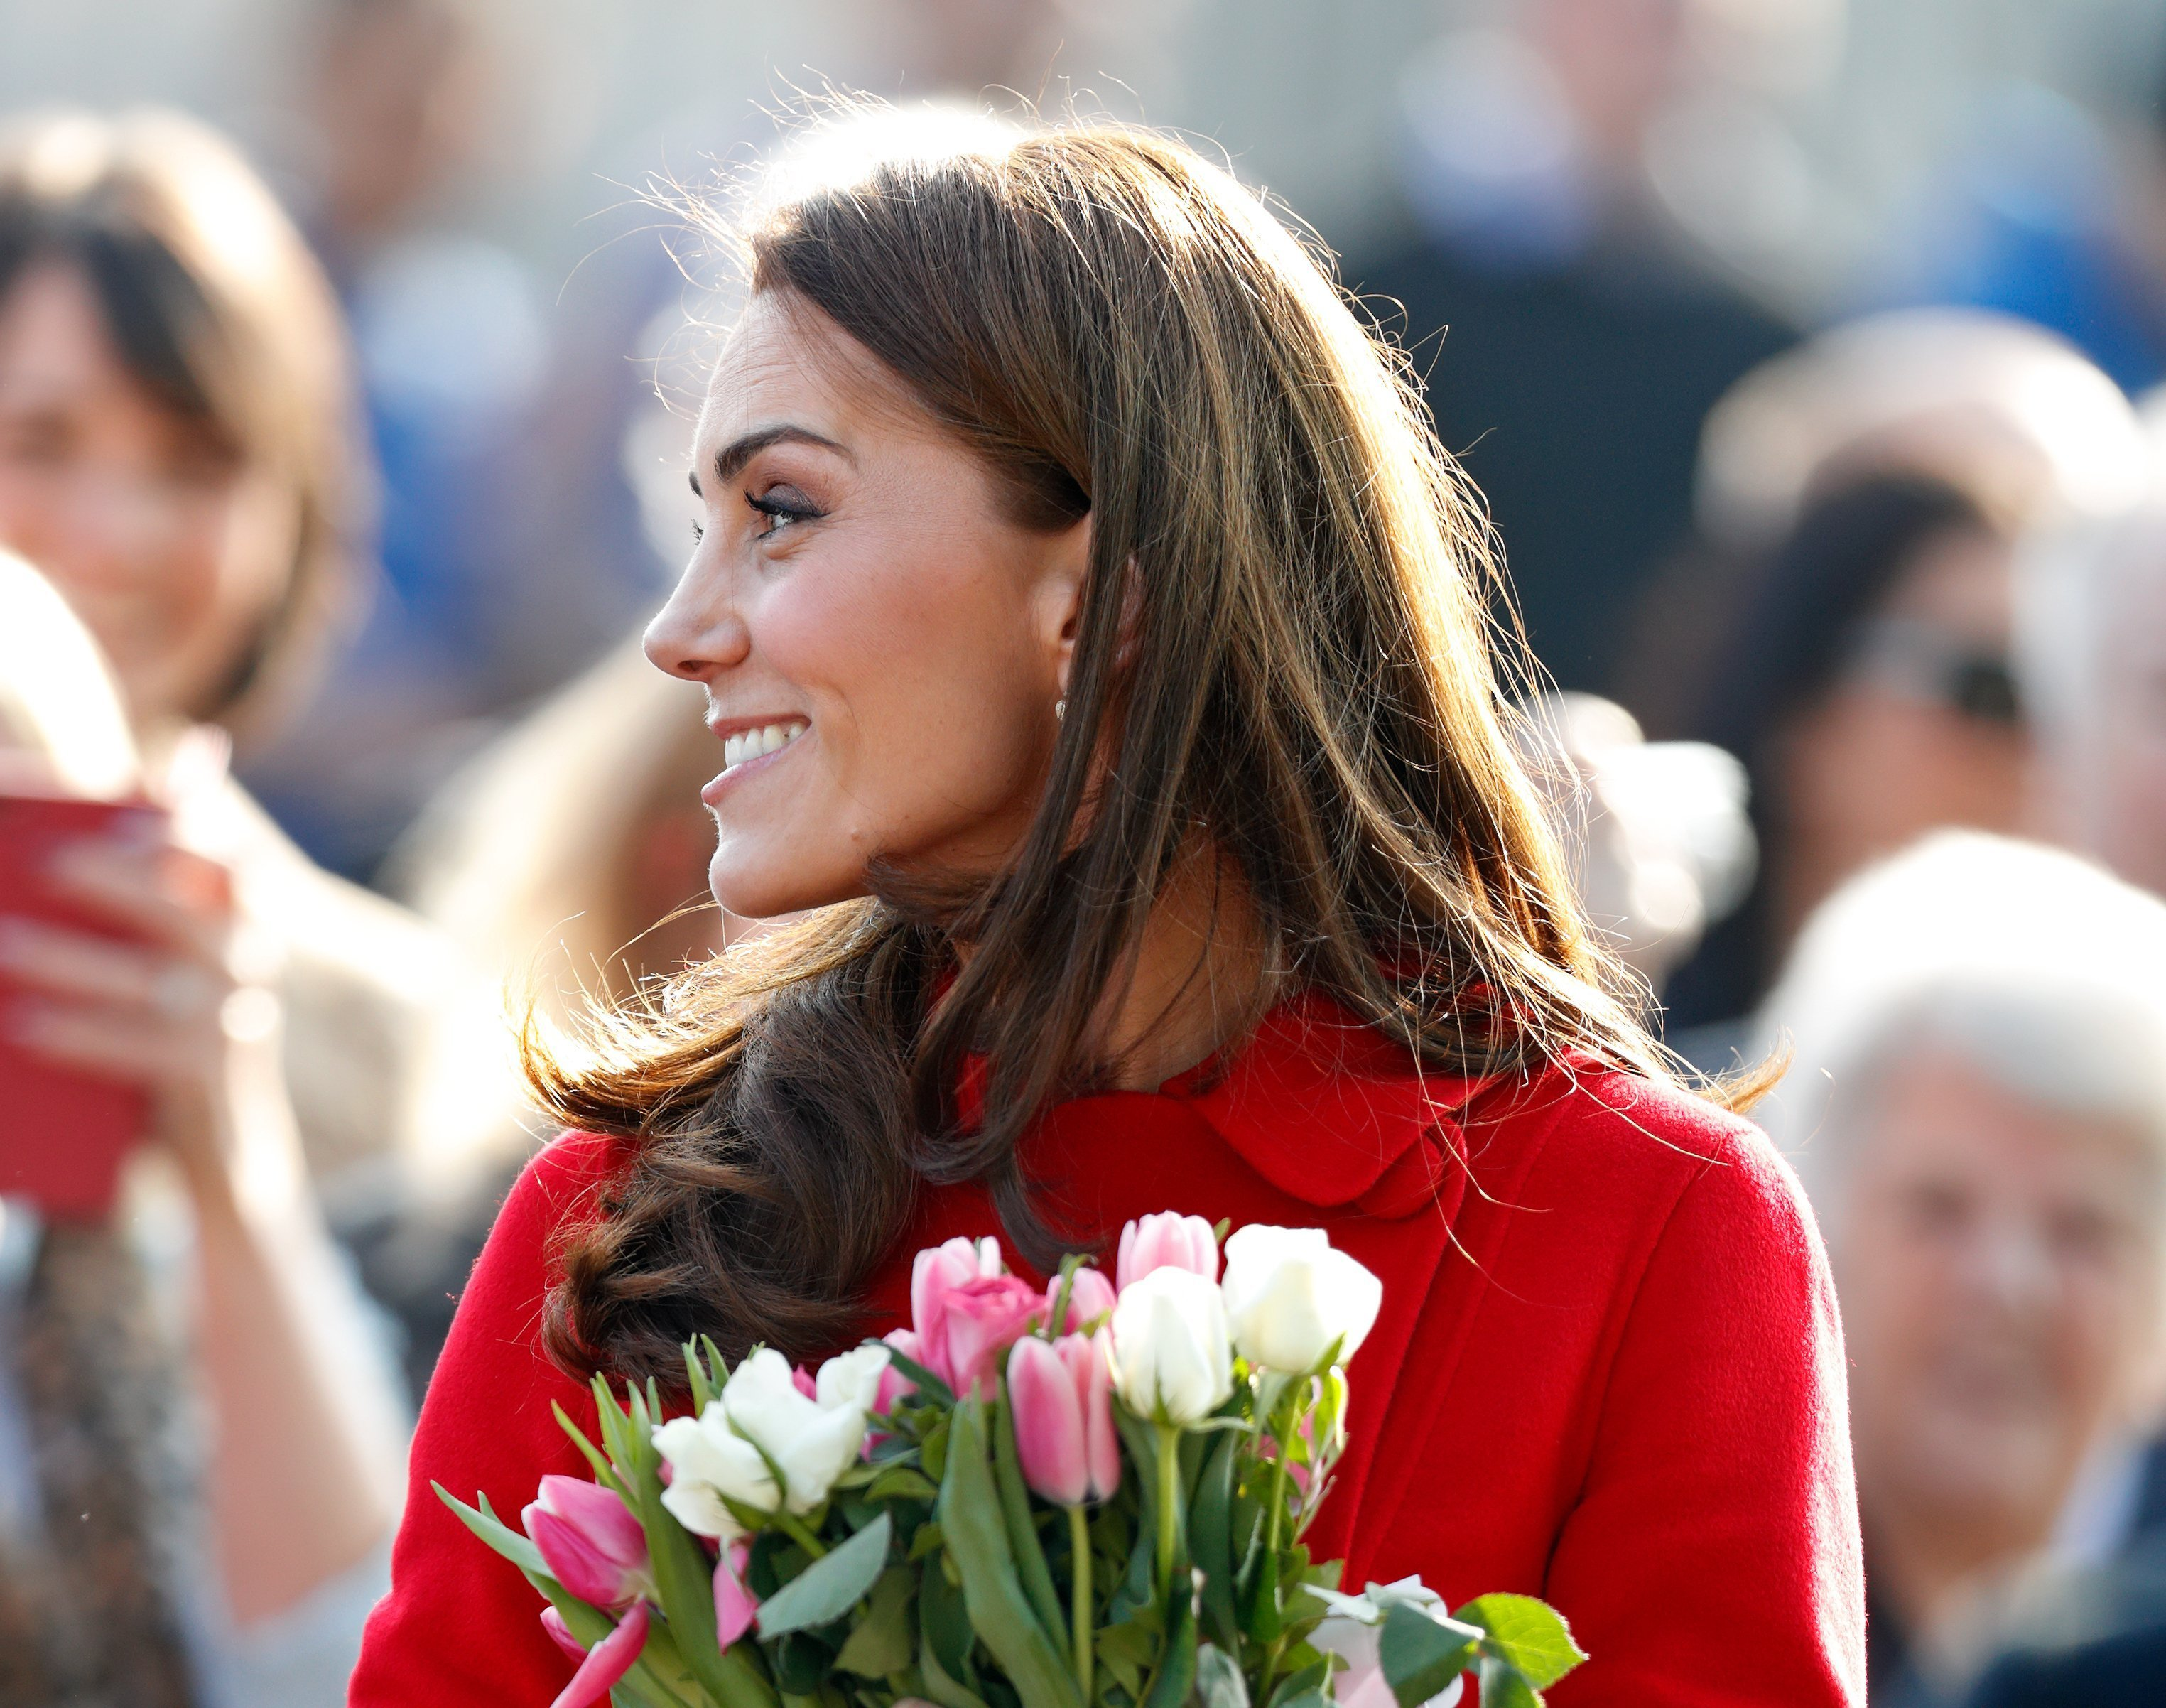 Kate Middleton en visite en Irlande du Nord en mars 2019 | Photo : Getty Images